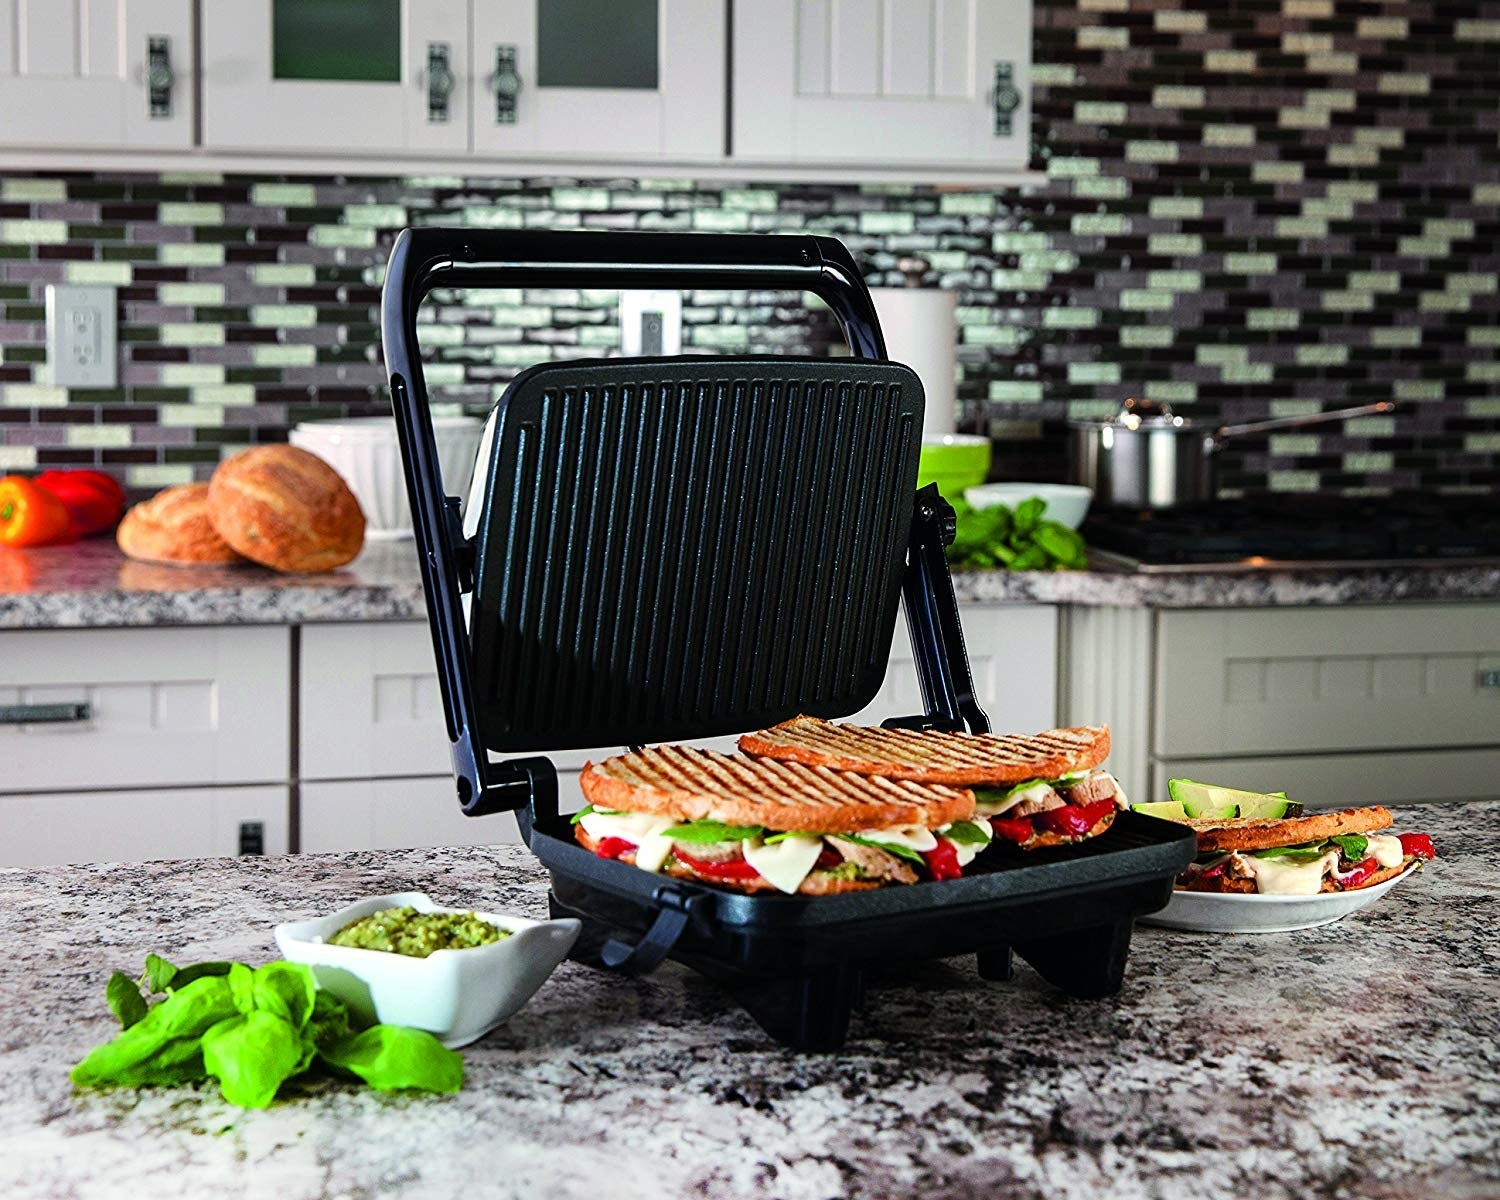 The hinged panini press with a sandwich with grill marks inside